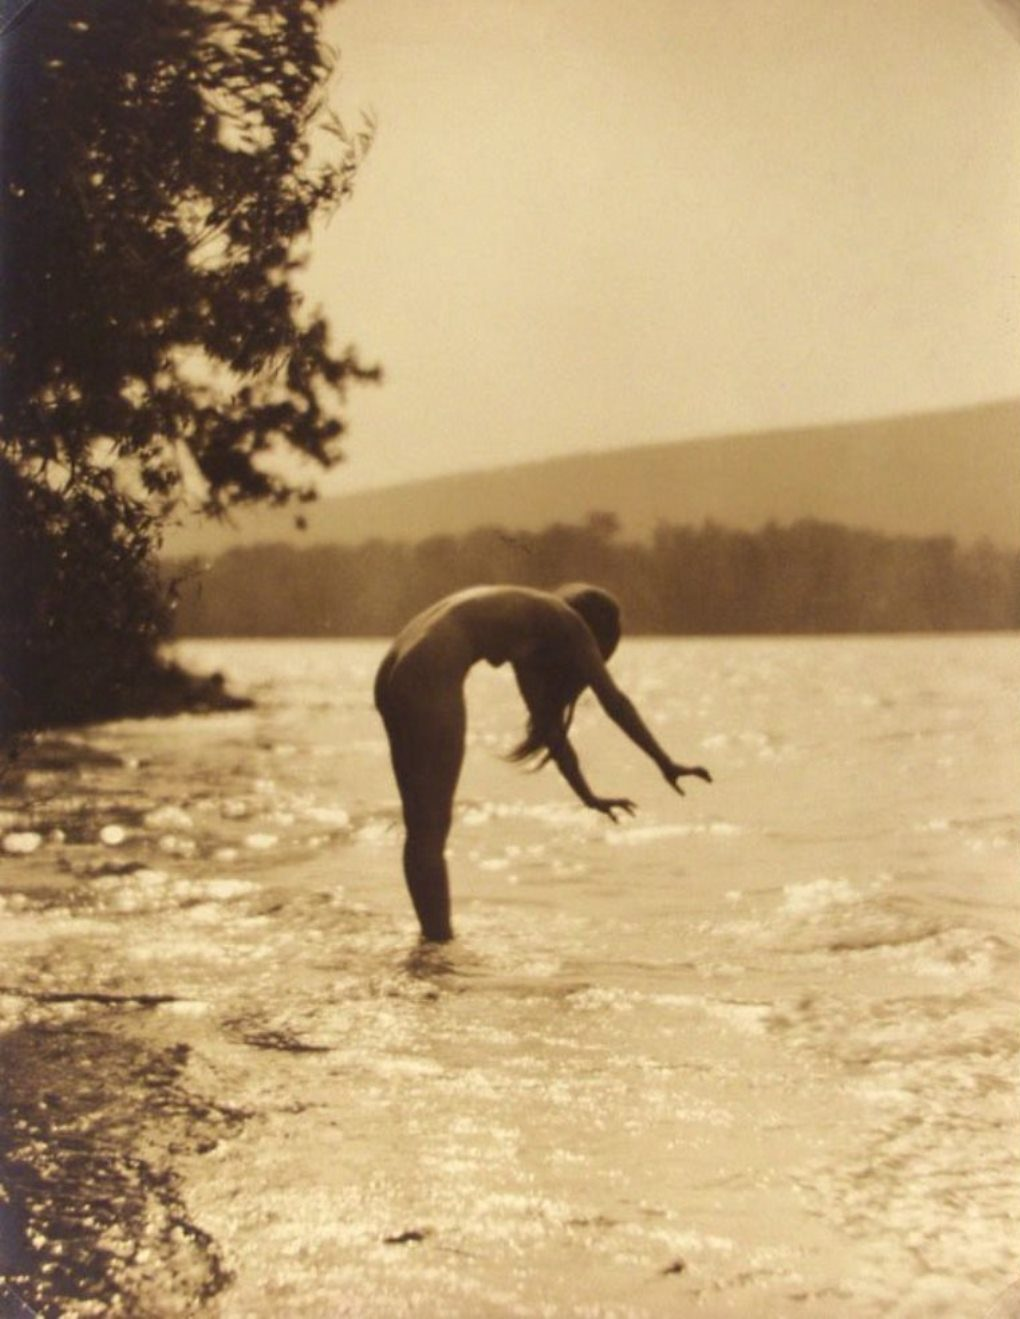 James Abbe. Worshipping the water 1921 Via liveauctioneers